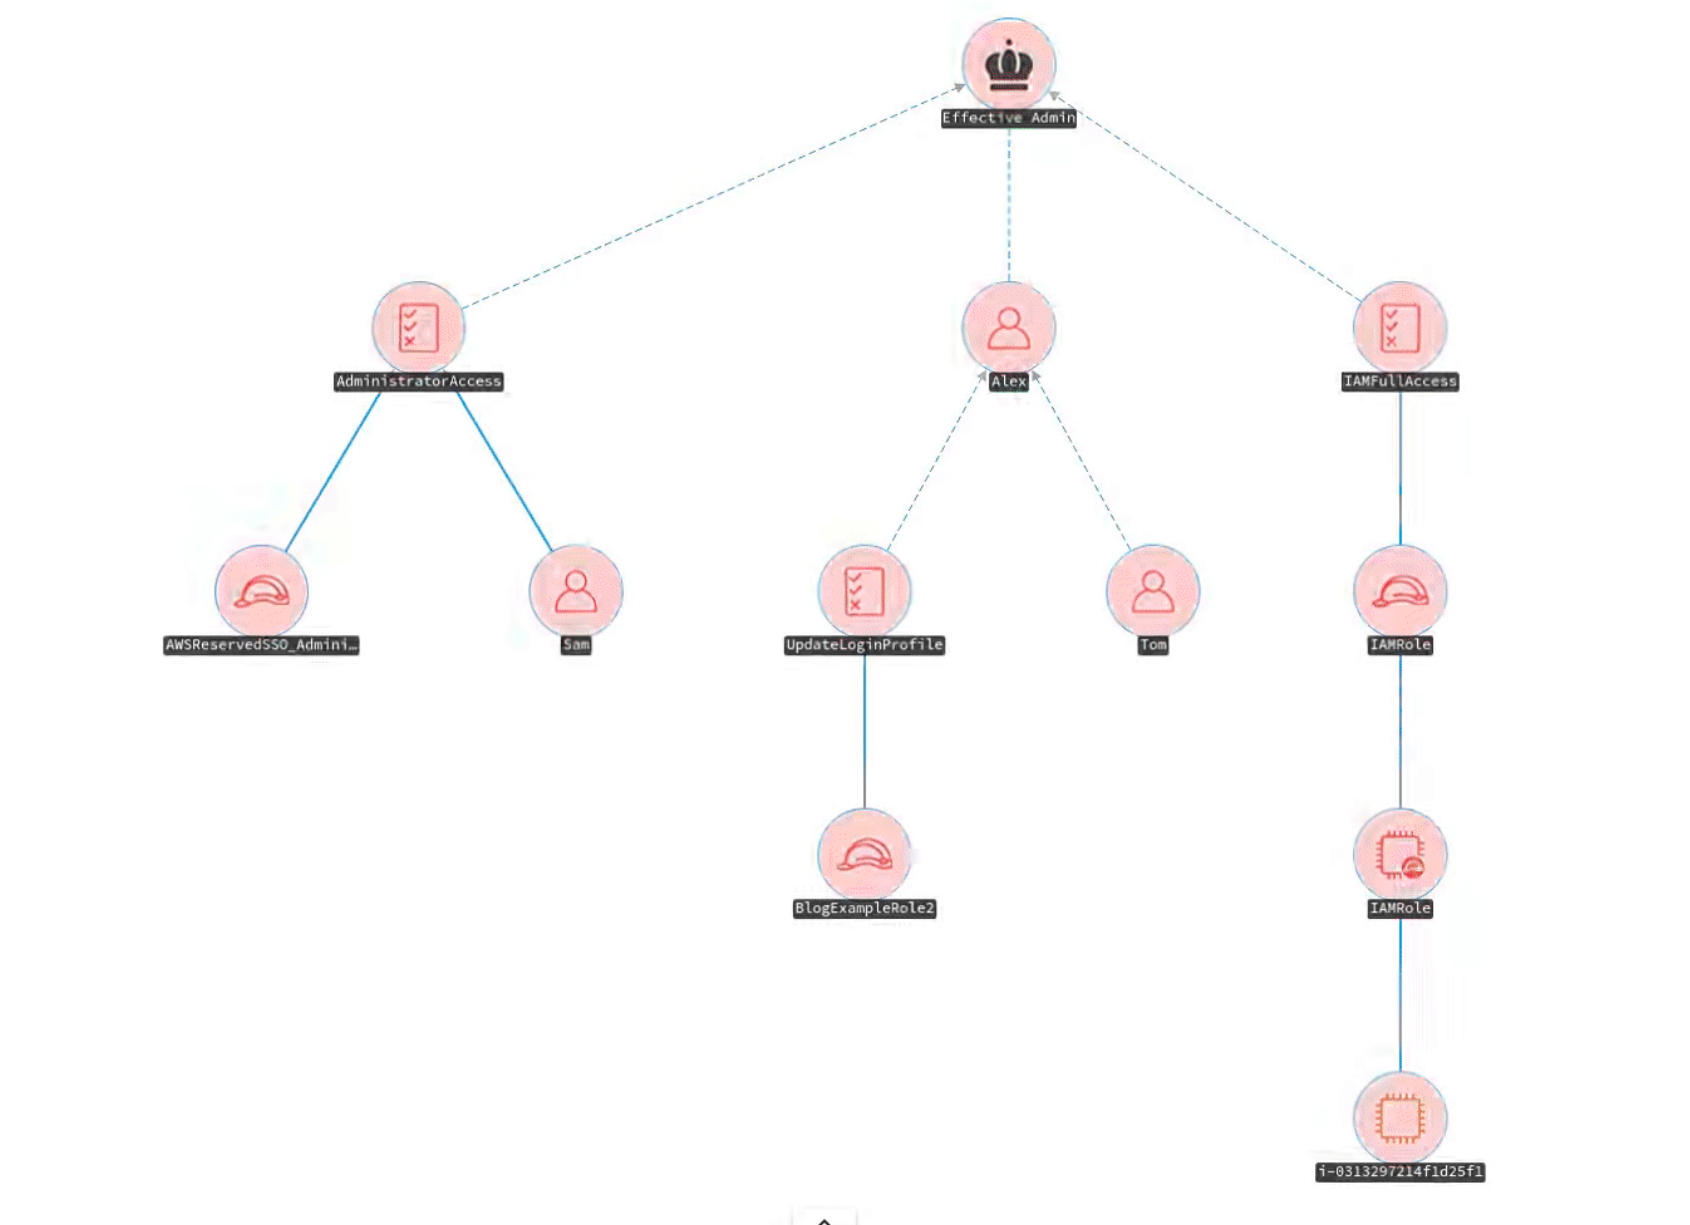 awspx: visualizing effective access and resource relationships in AWS environments